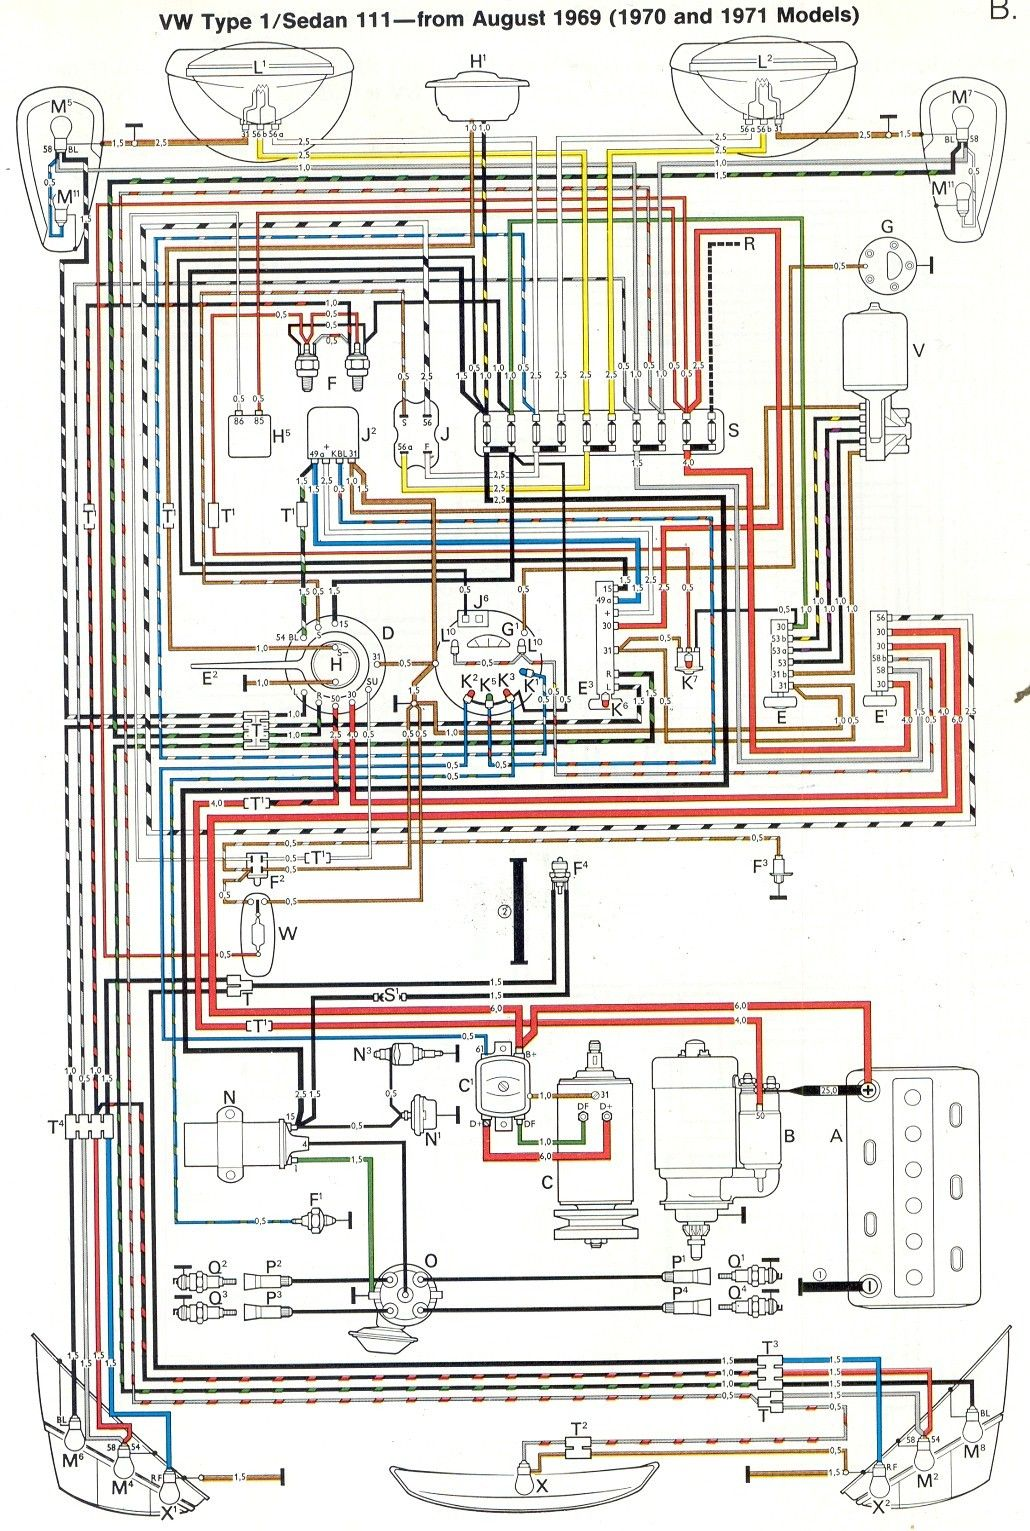 Inspirational 1971 Vw Beetle Wiring Diagram In 2020 Volkswagen Car Vw Beetles Vw Bug